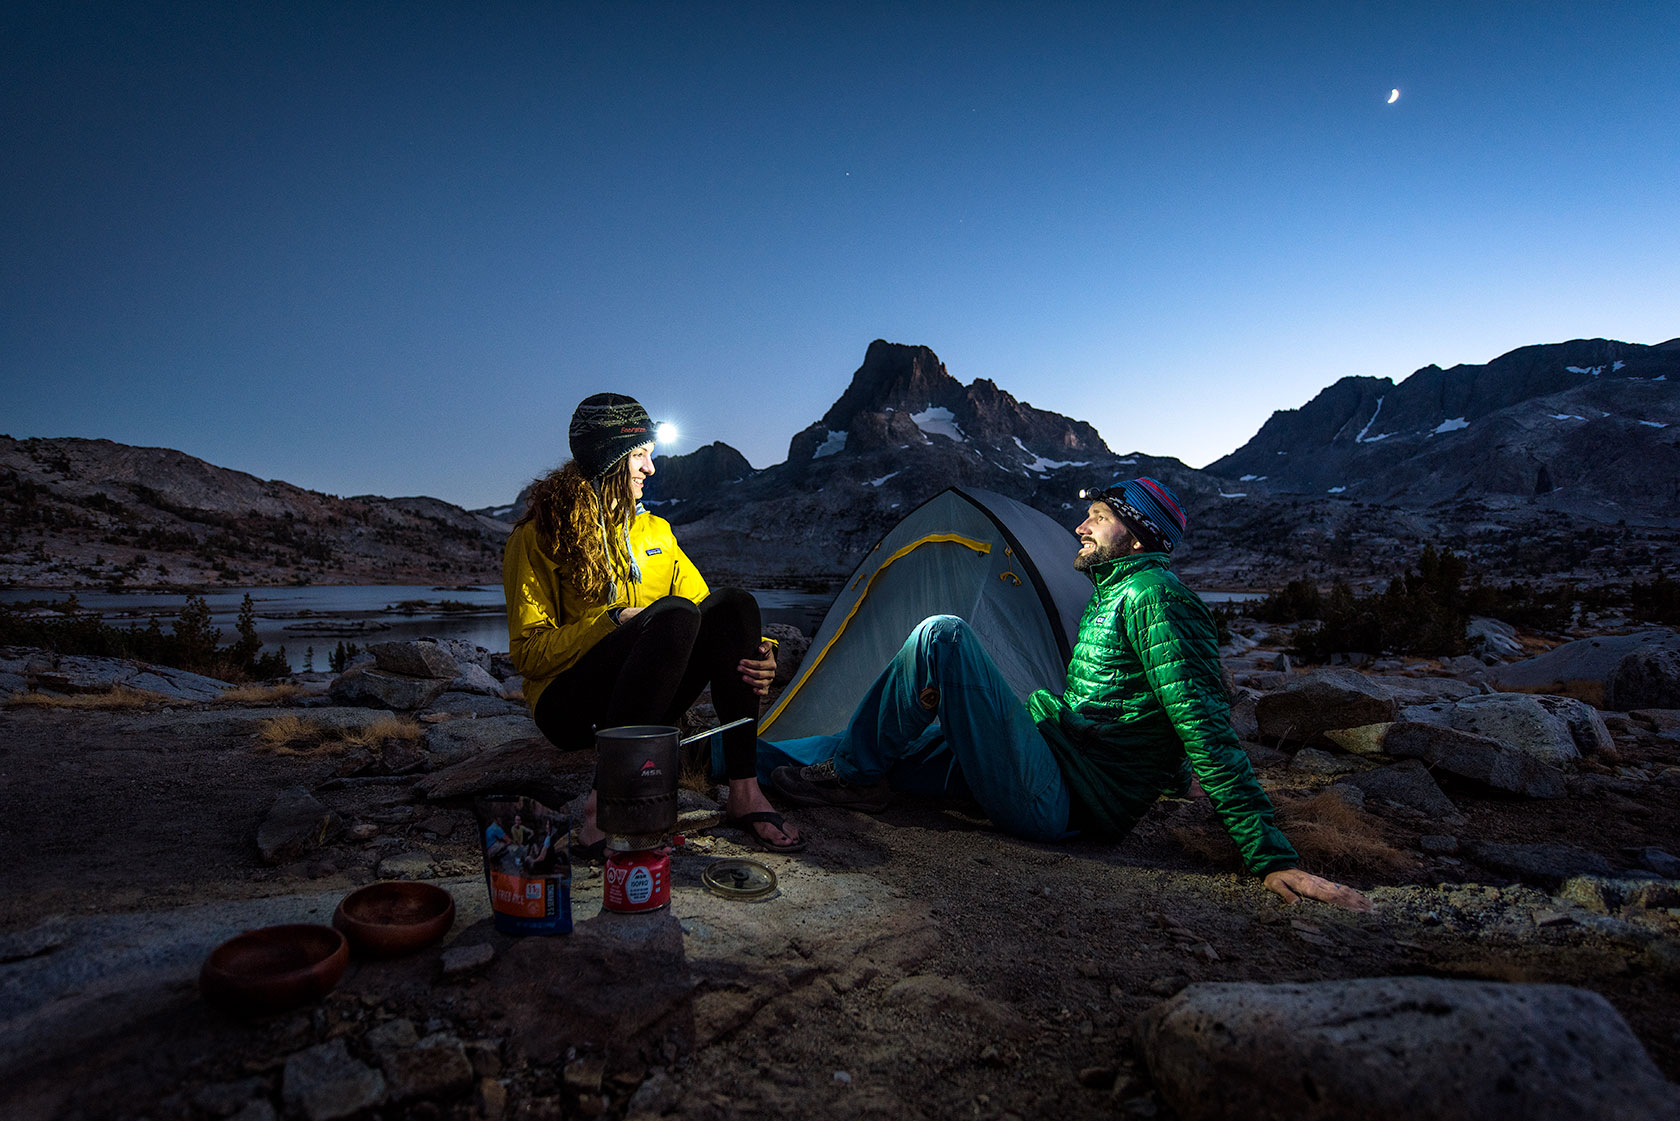 austin-trigg-patagonia-hiking-john-muir-trail-wilderness-california-adventure-outside-camp-sierra-nevada-lifestyle-banner-peak-thousand-island-lake-sunset-moonrise-tent-dinner.jpg